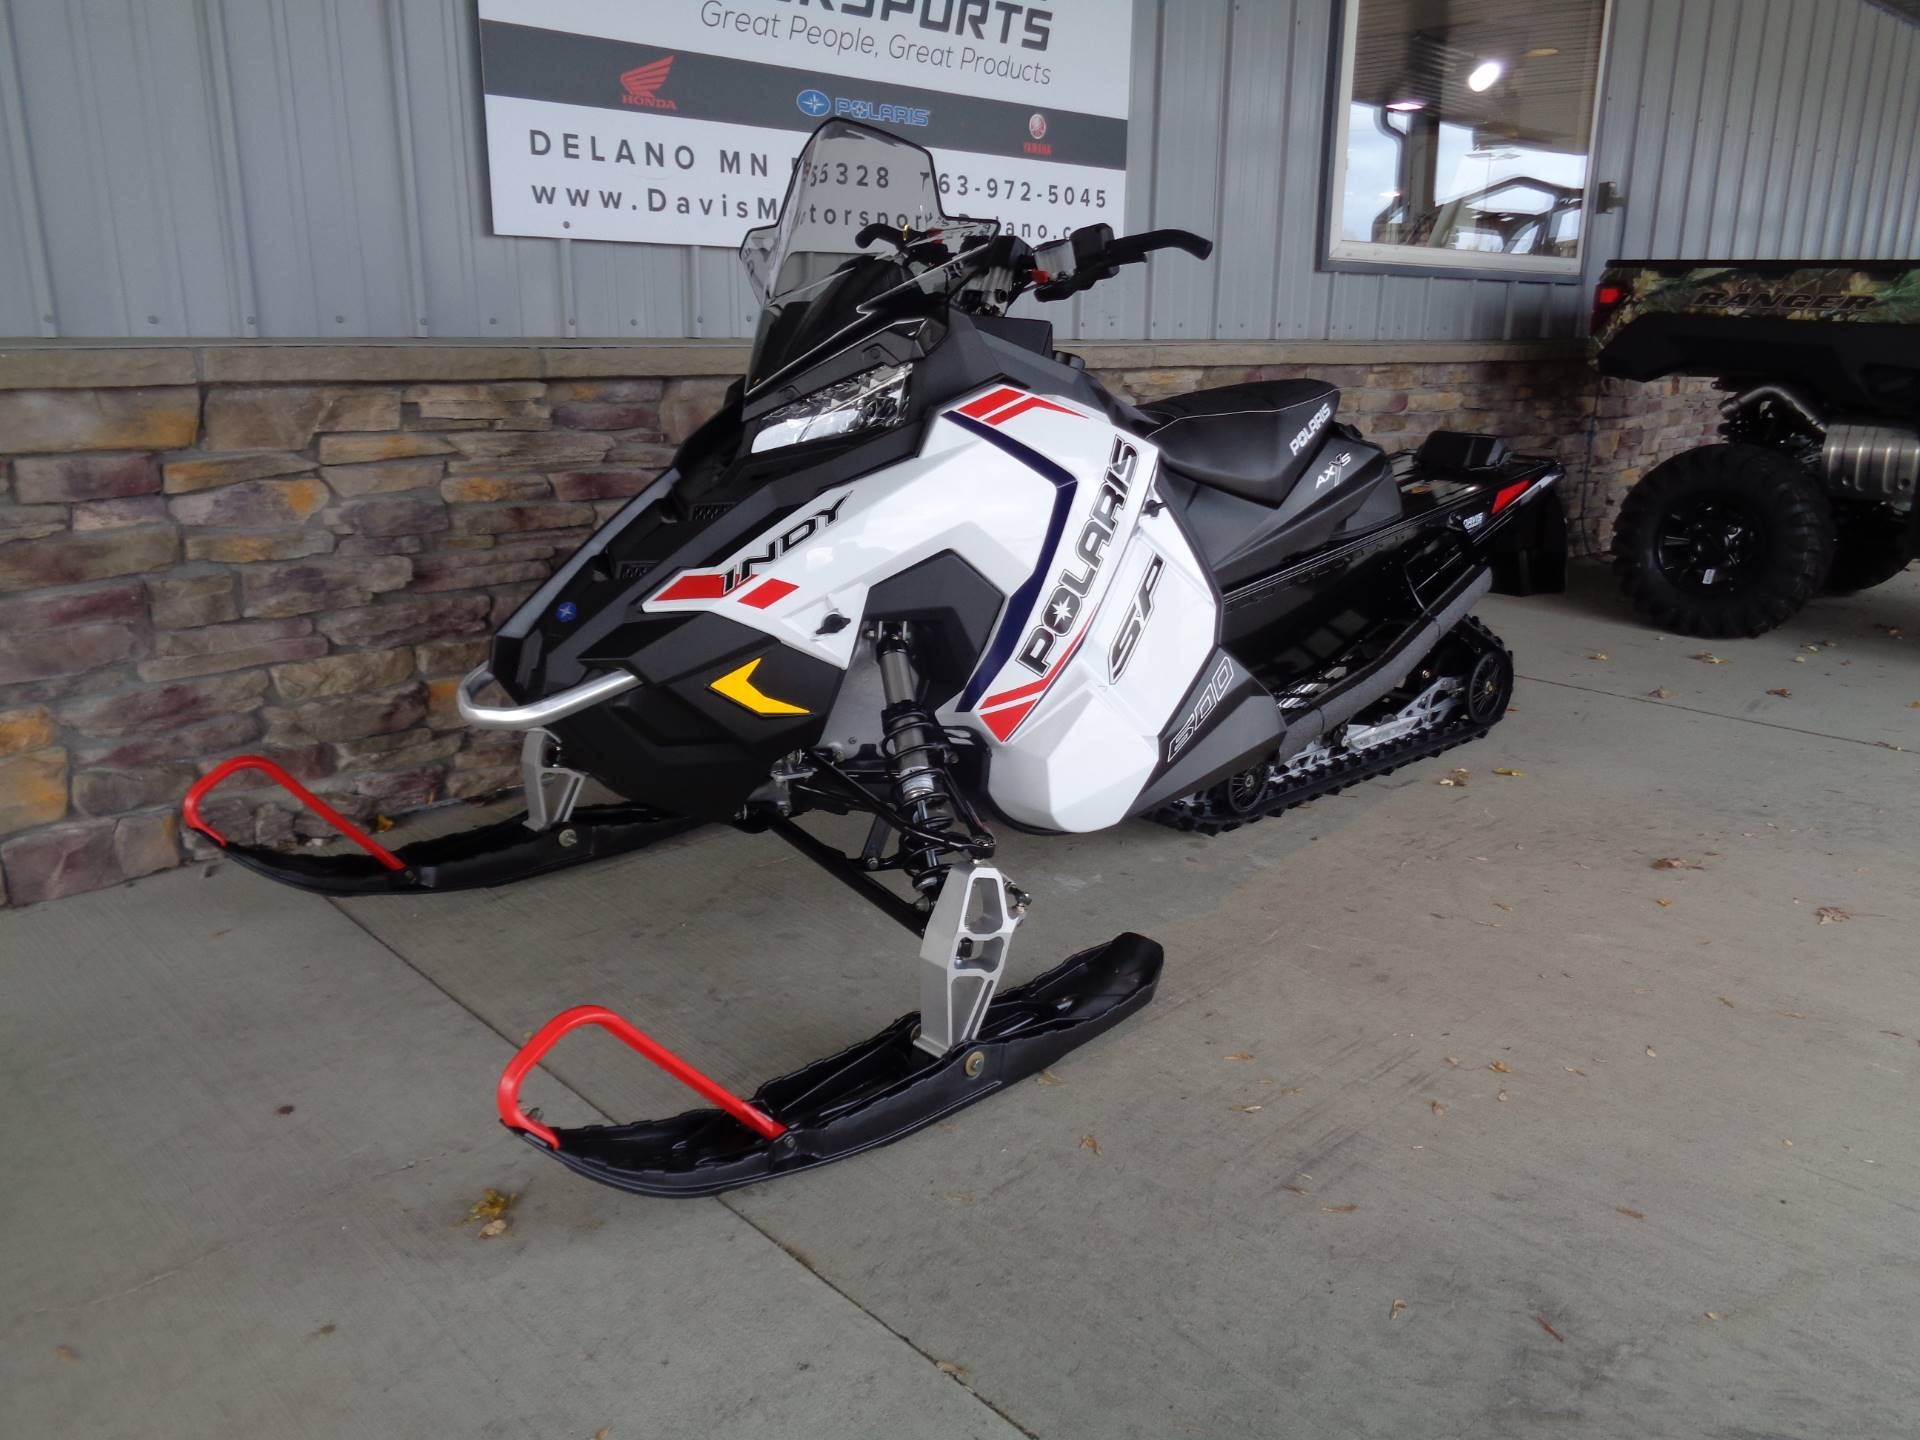 2020 Polaris 600 Indy SP 137 ES in Delano, Minnesota - Photo 4